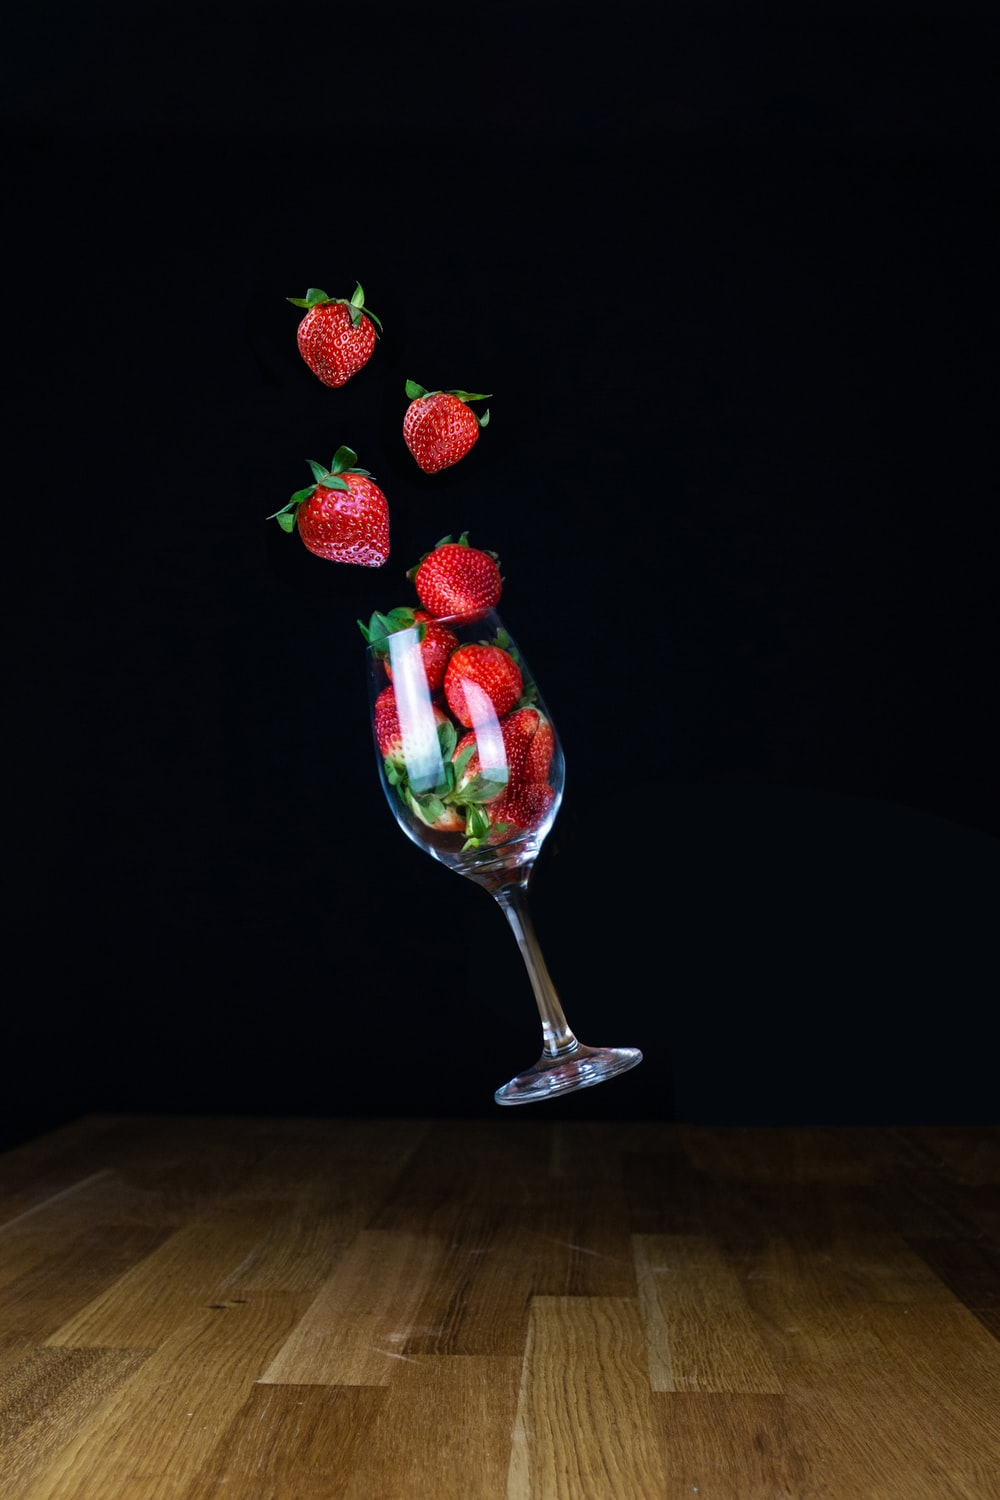 strawberries on clear glass footed cup